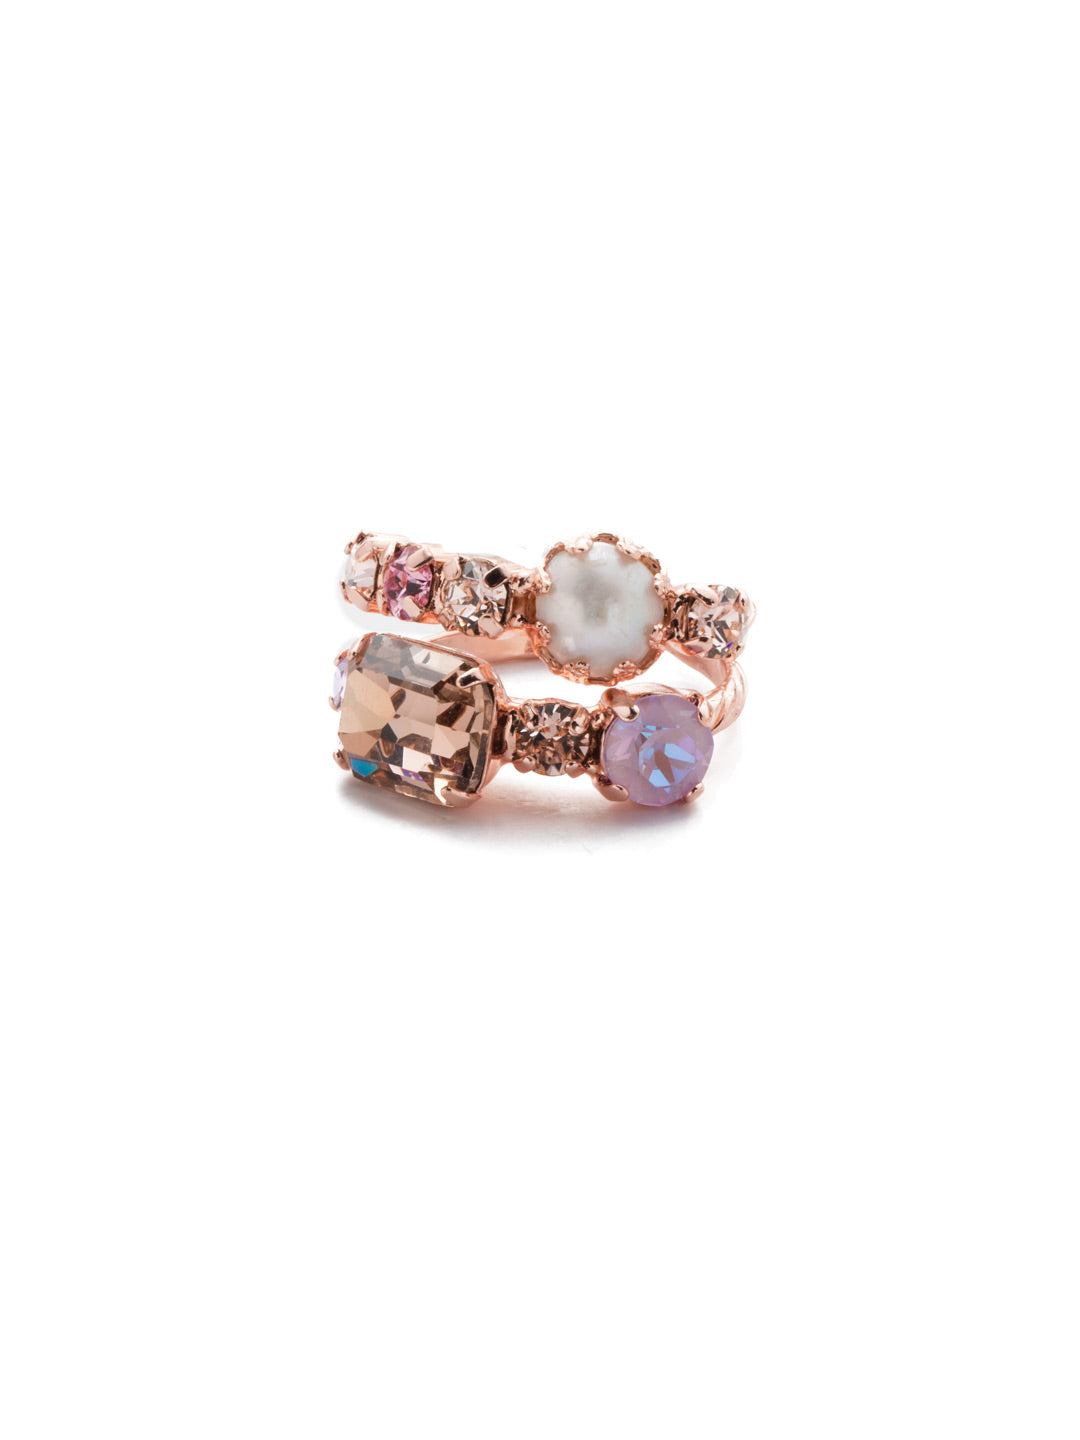 Emmanuella Stacked Ring - RES12RGLVP